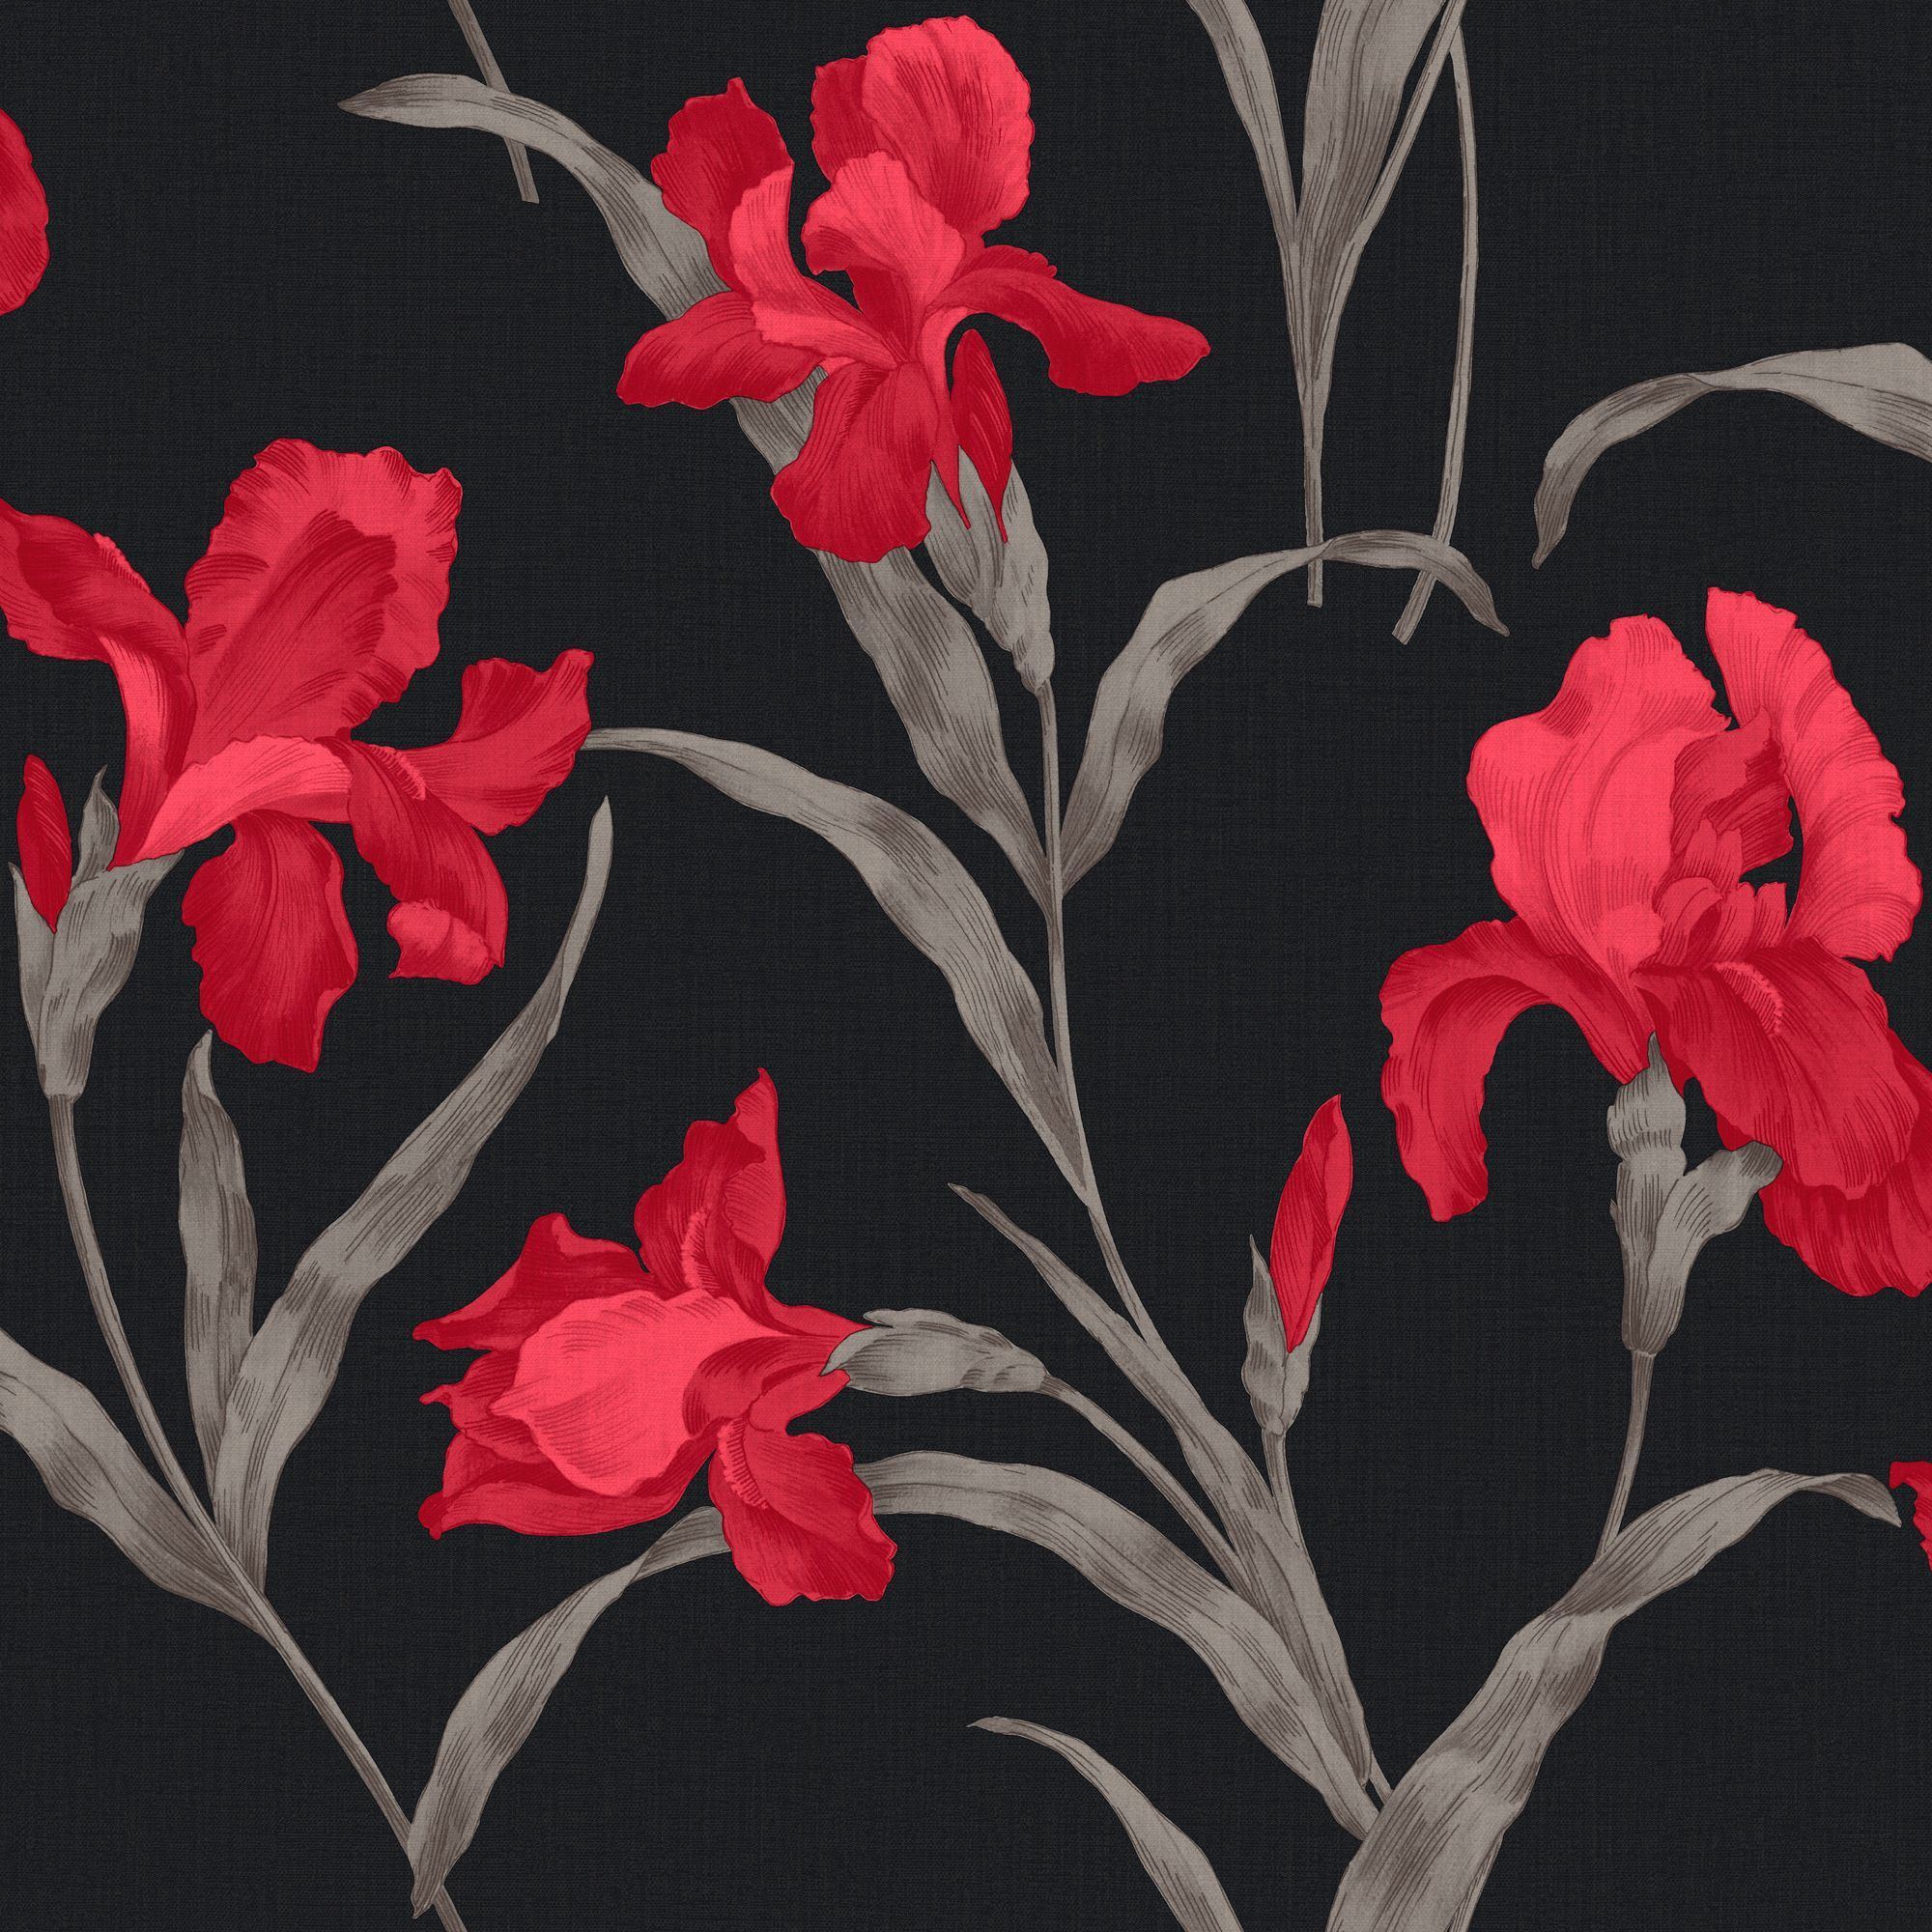 Sophie Conran Fleur Red Wallpaper Departments Diy At B Q Black And Silver Wallpaper Red And Black Wallpaper Magnolia Wallpaper